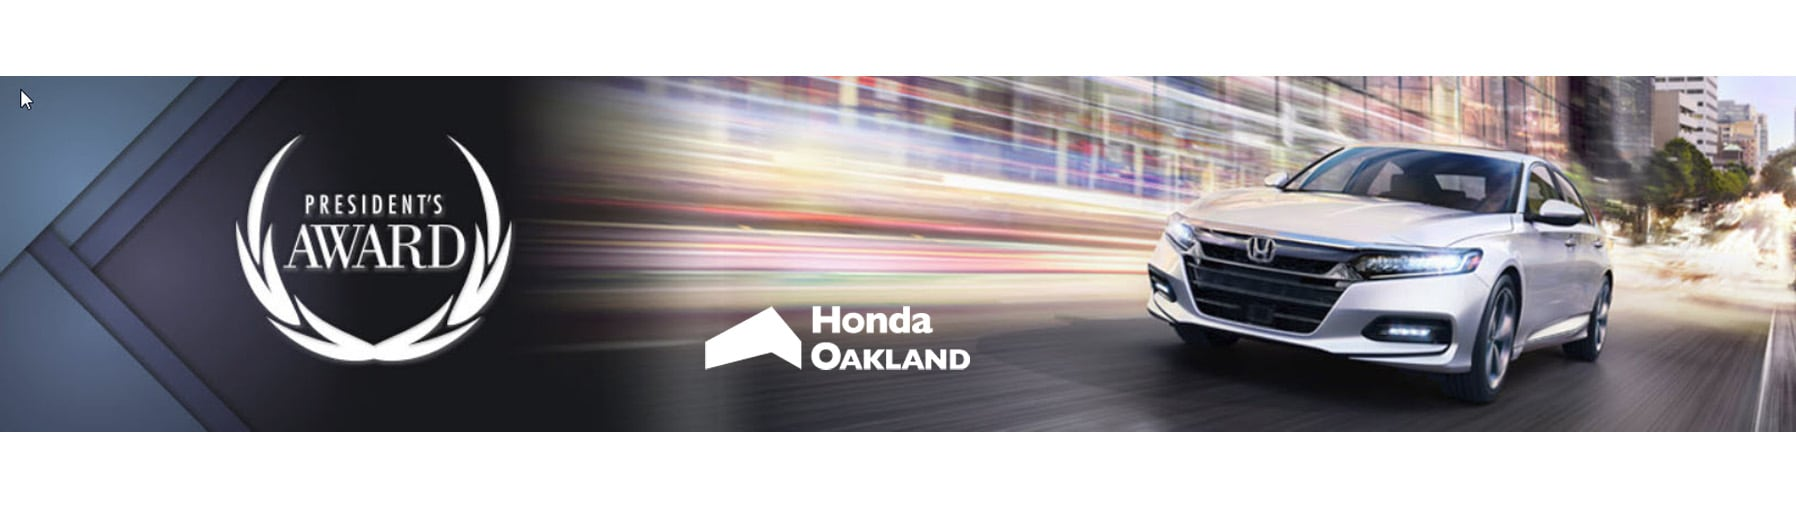 New 2018 2019 Honda Used Car Dealer In Oakland Ca Of 2001 Crv Parts Discount Factory Oem And 1 2 3 4 5 6 7 8 9 10 11 12 13 14 15 16